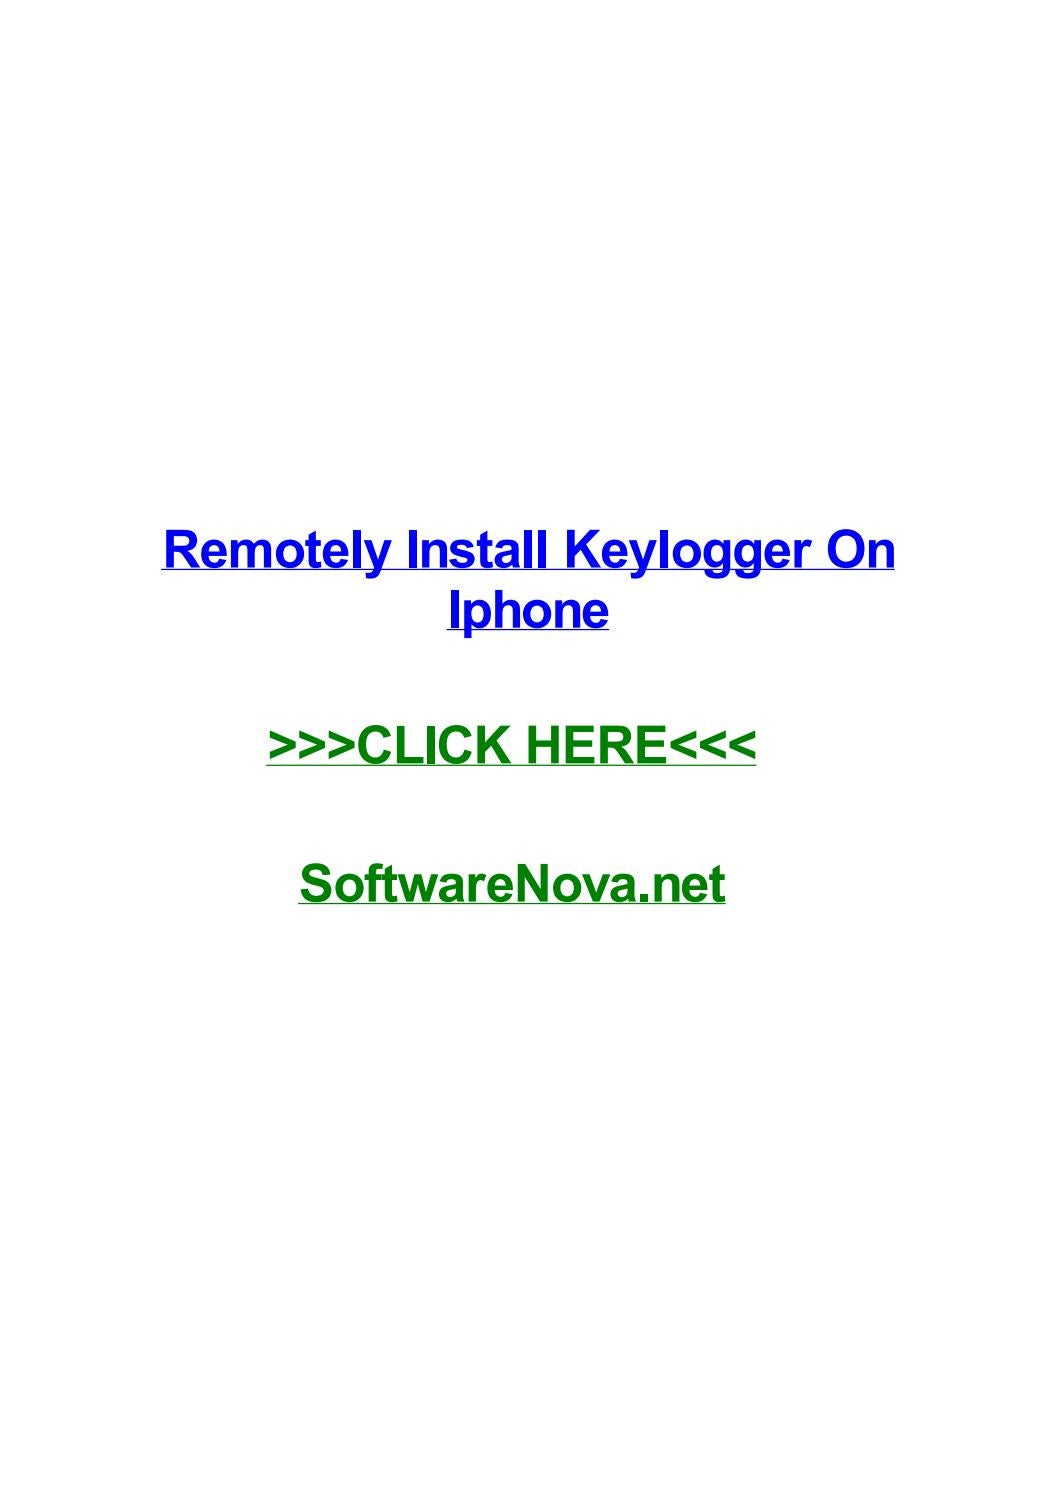 Remotely install keylogger on iphone by jessicanamt - issuu